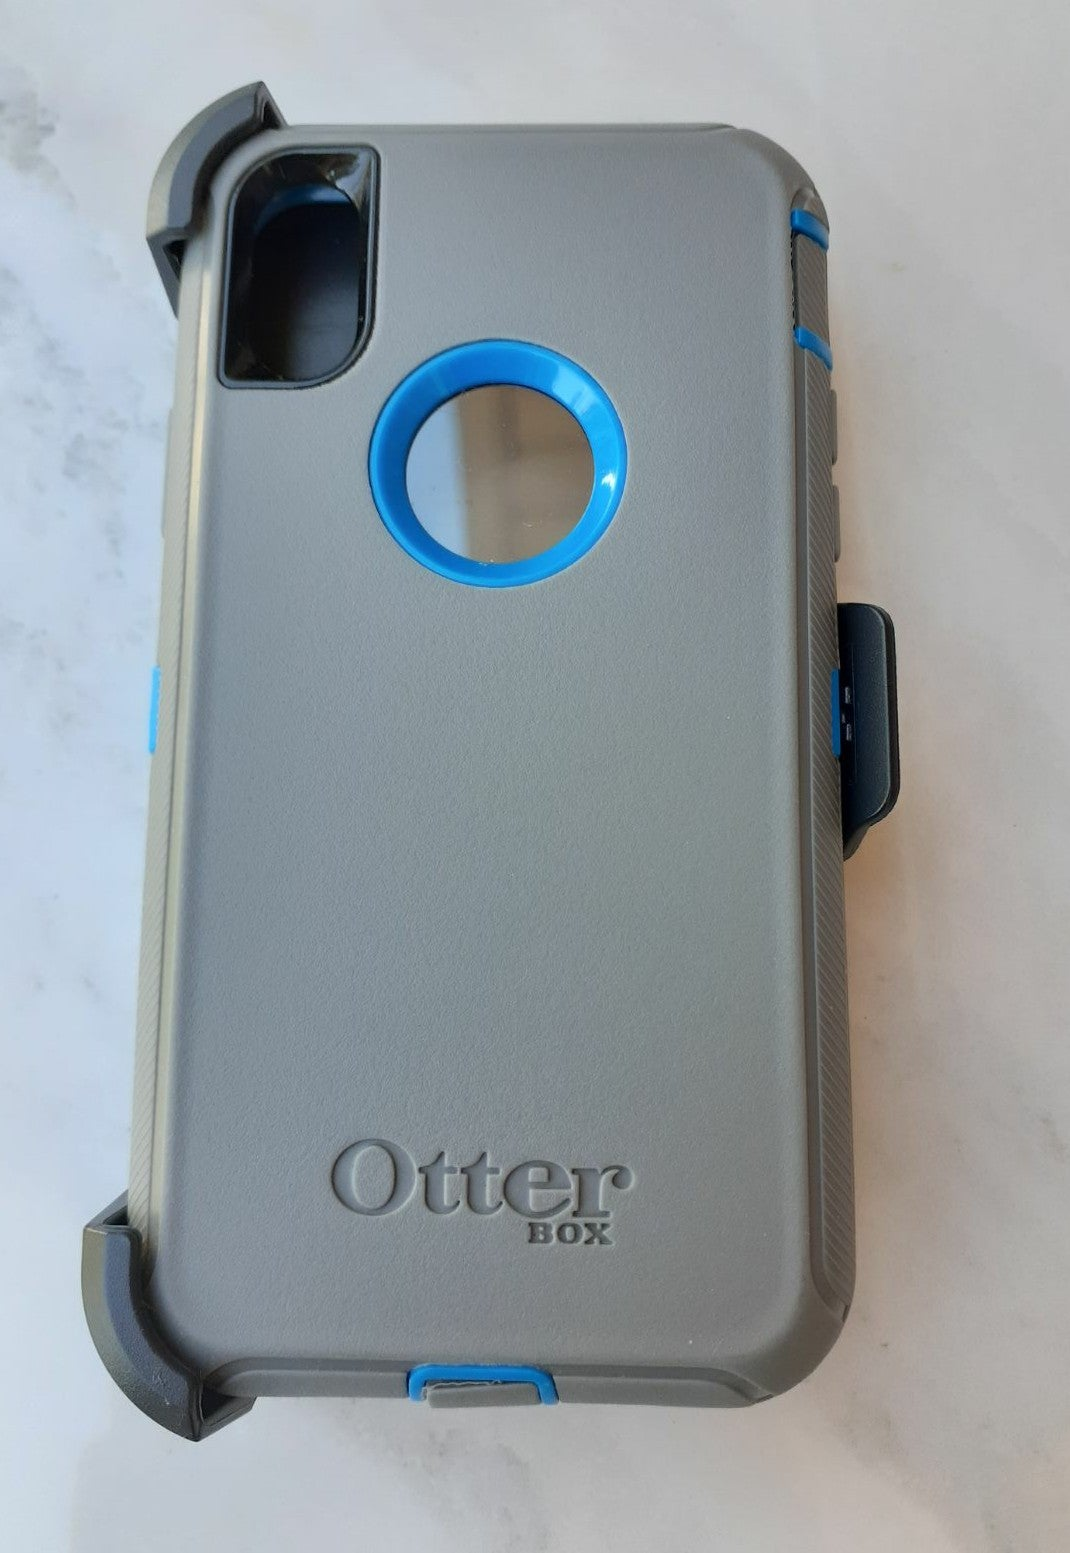 Otterbox Defender case for iPhone X/Xs